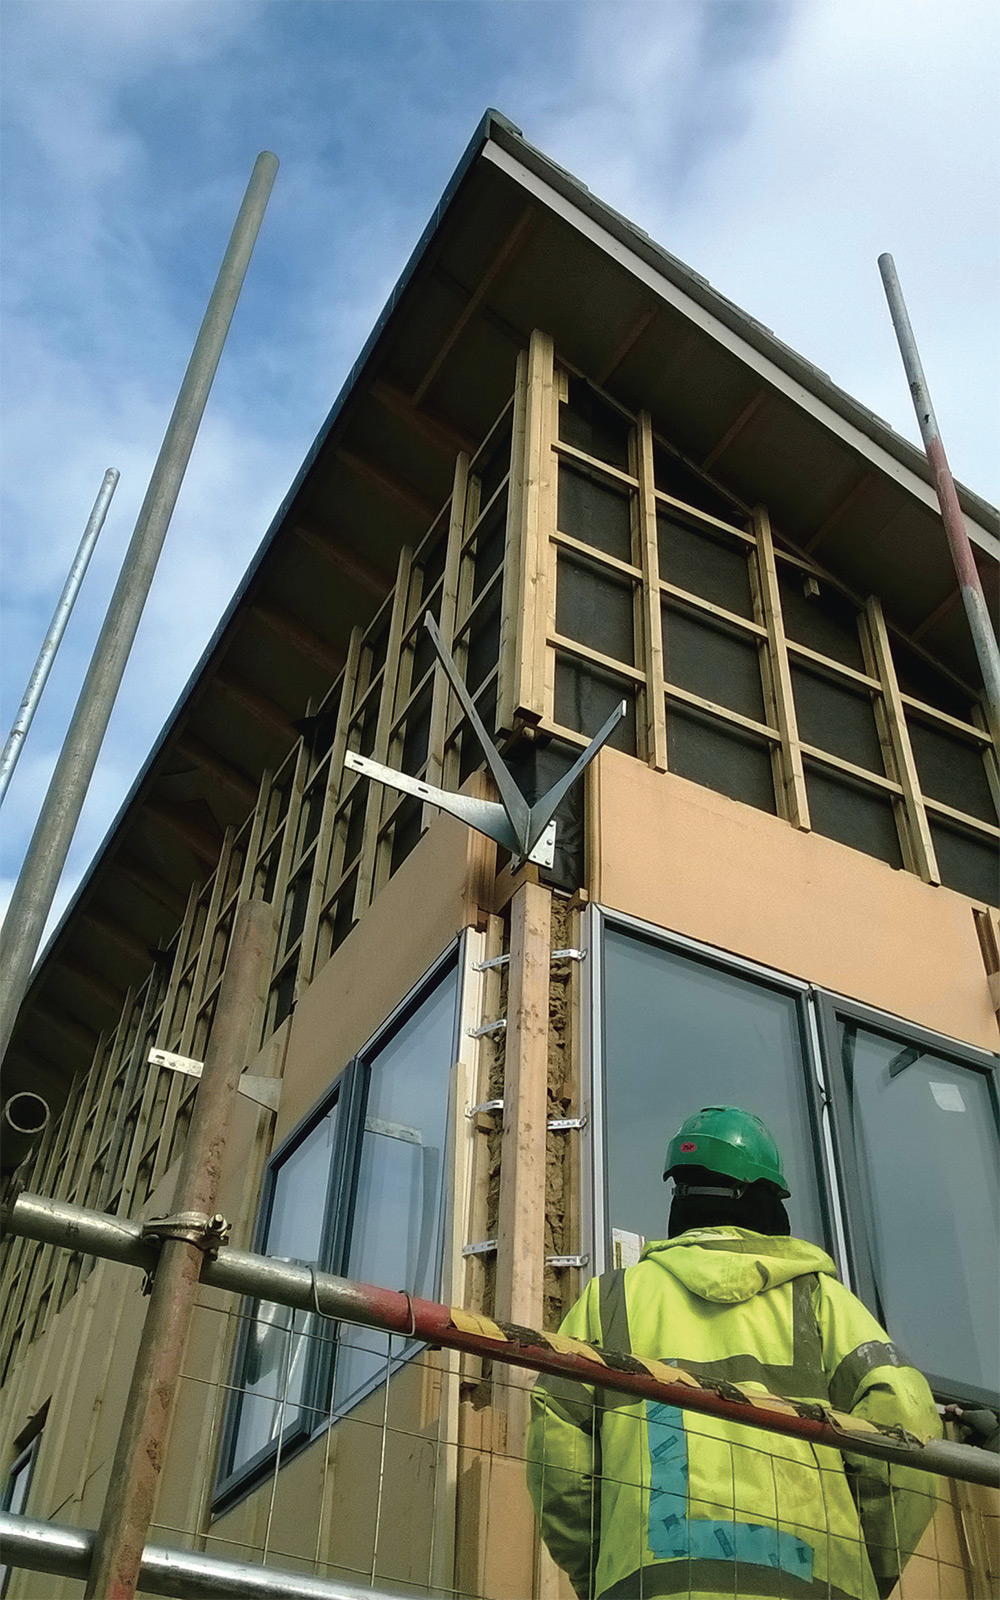 Pavatherm Plus woodfibre insulation boards were fitted externally over the frame